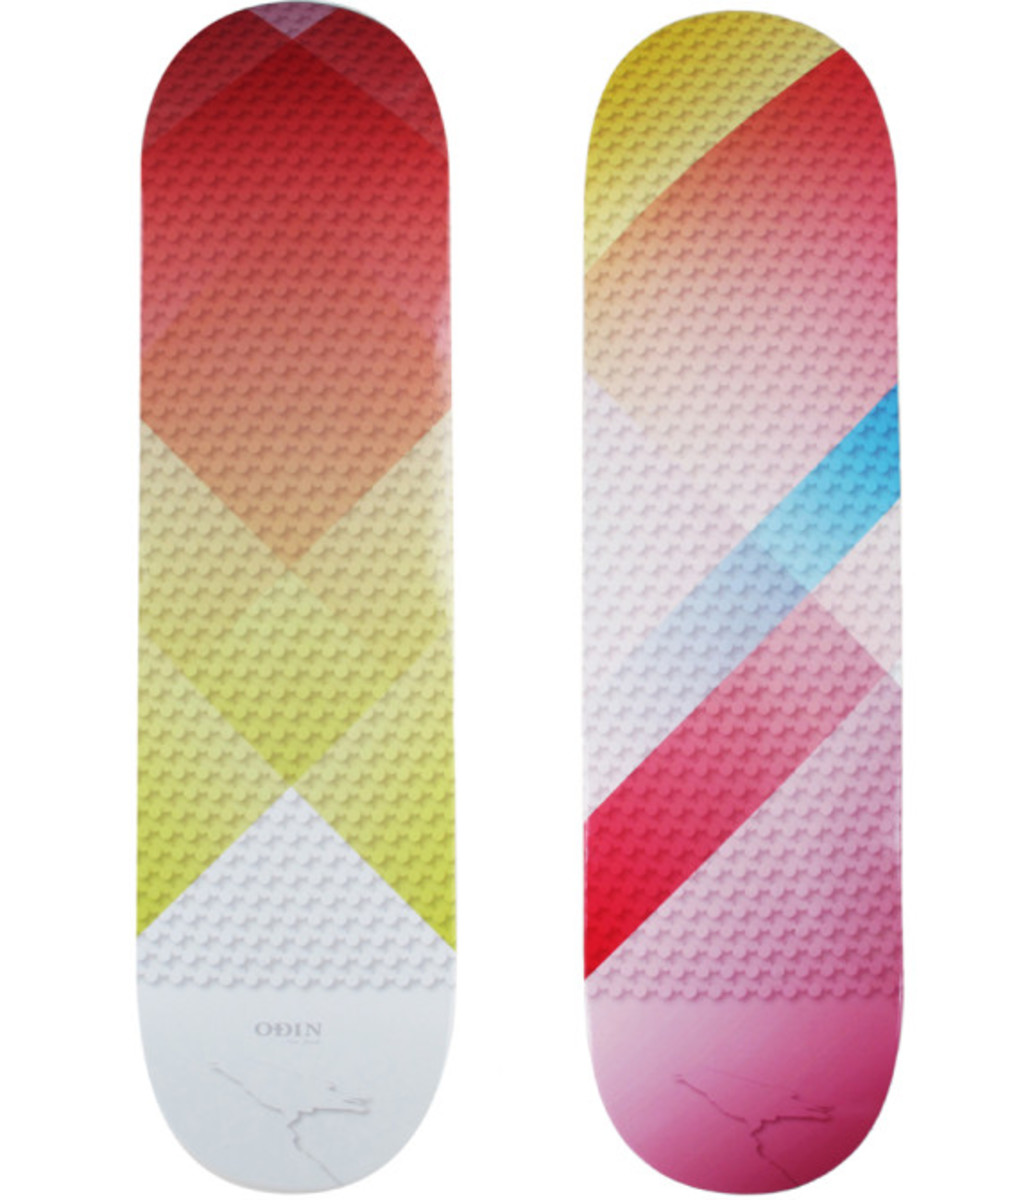 odin-summer-2013-limited-edition-skateboard-collection-03